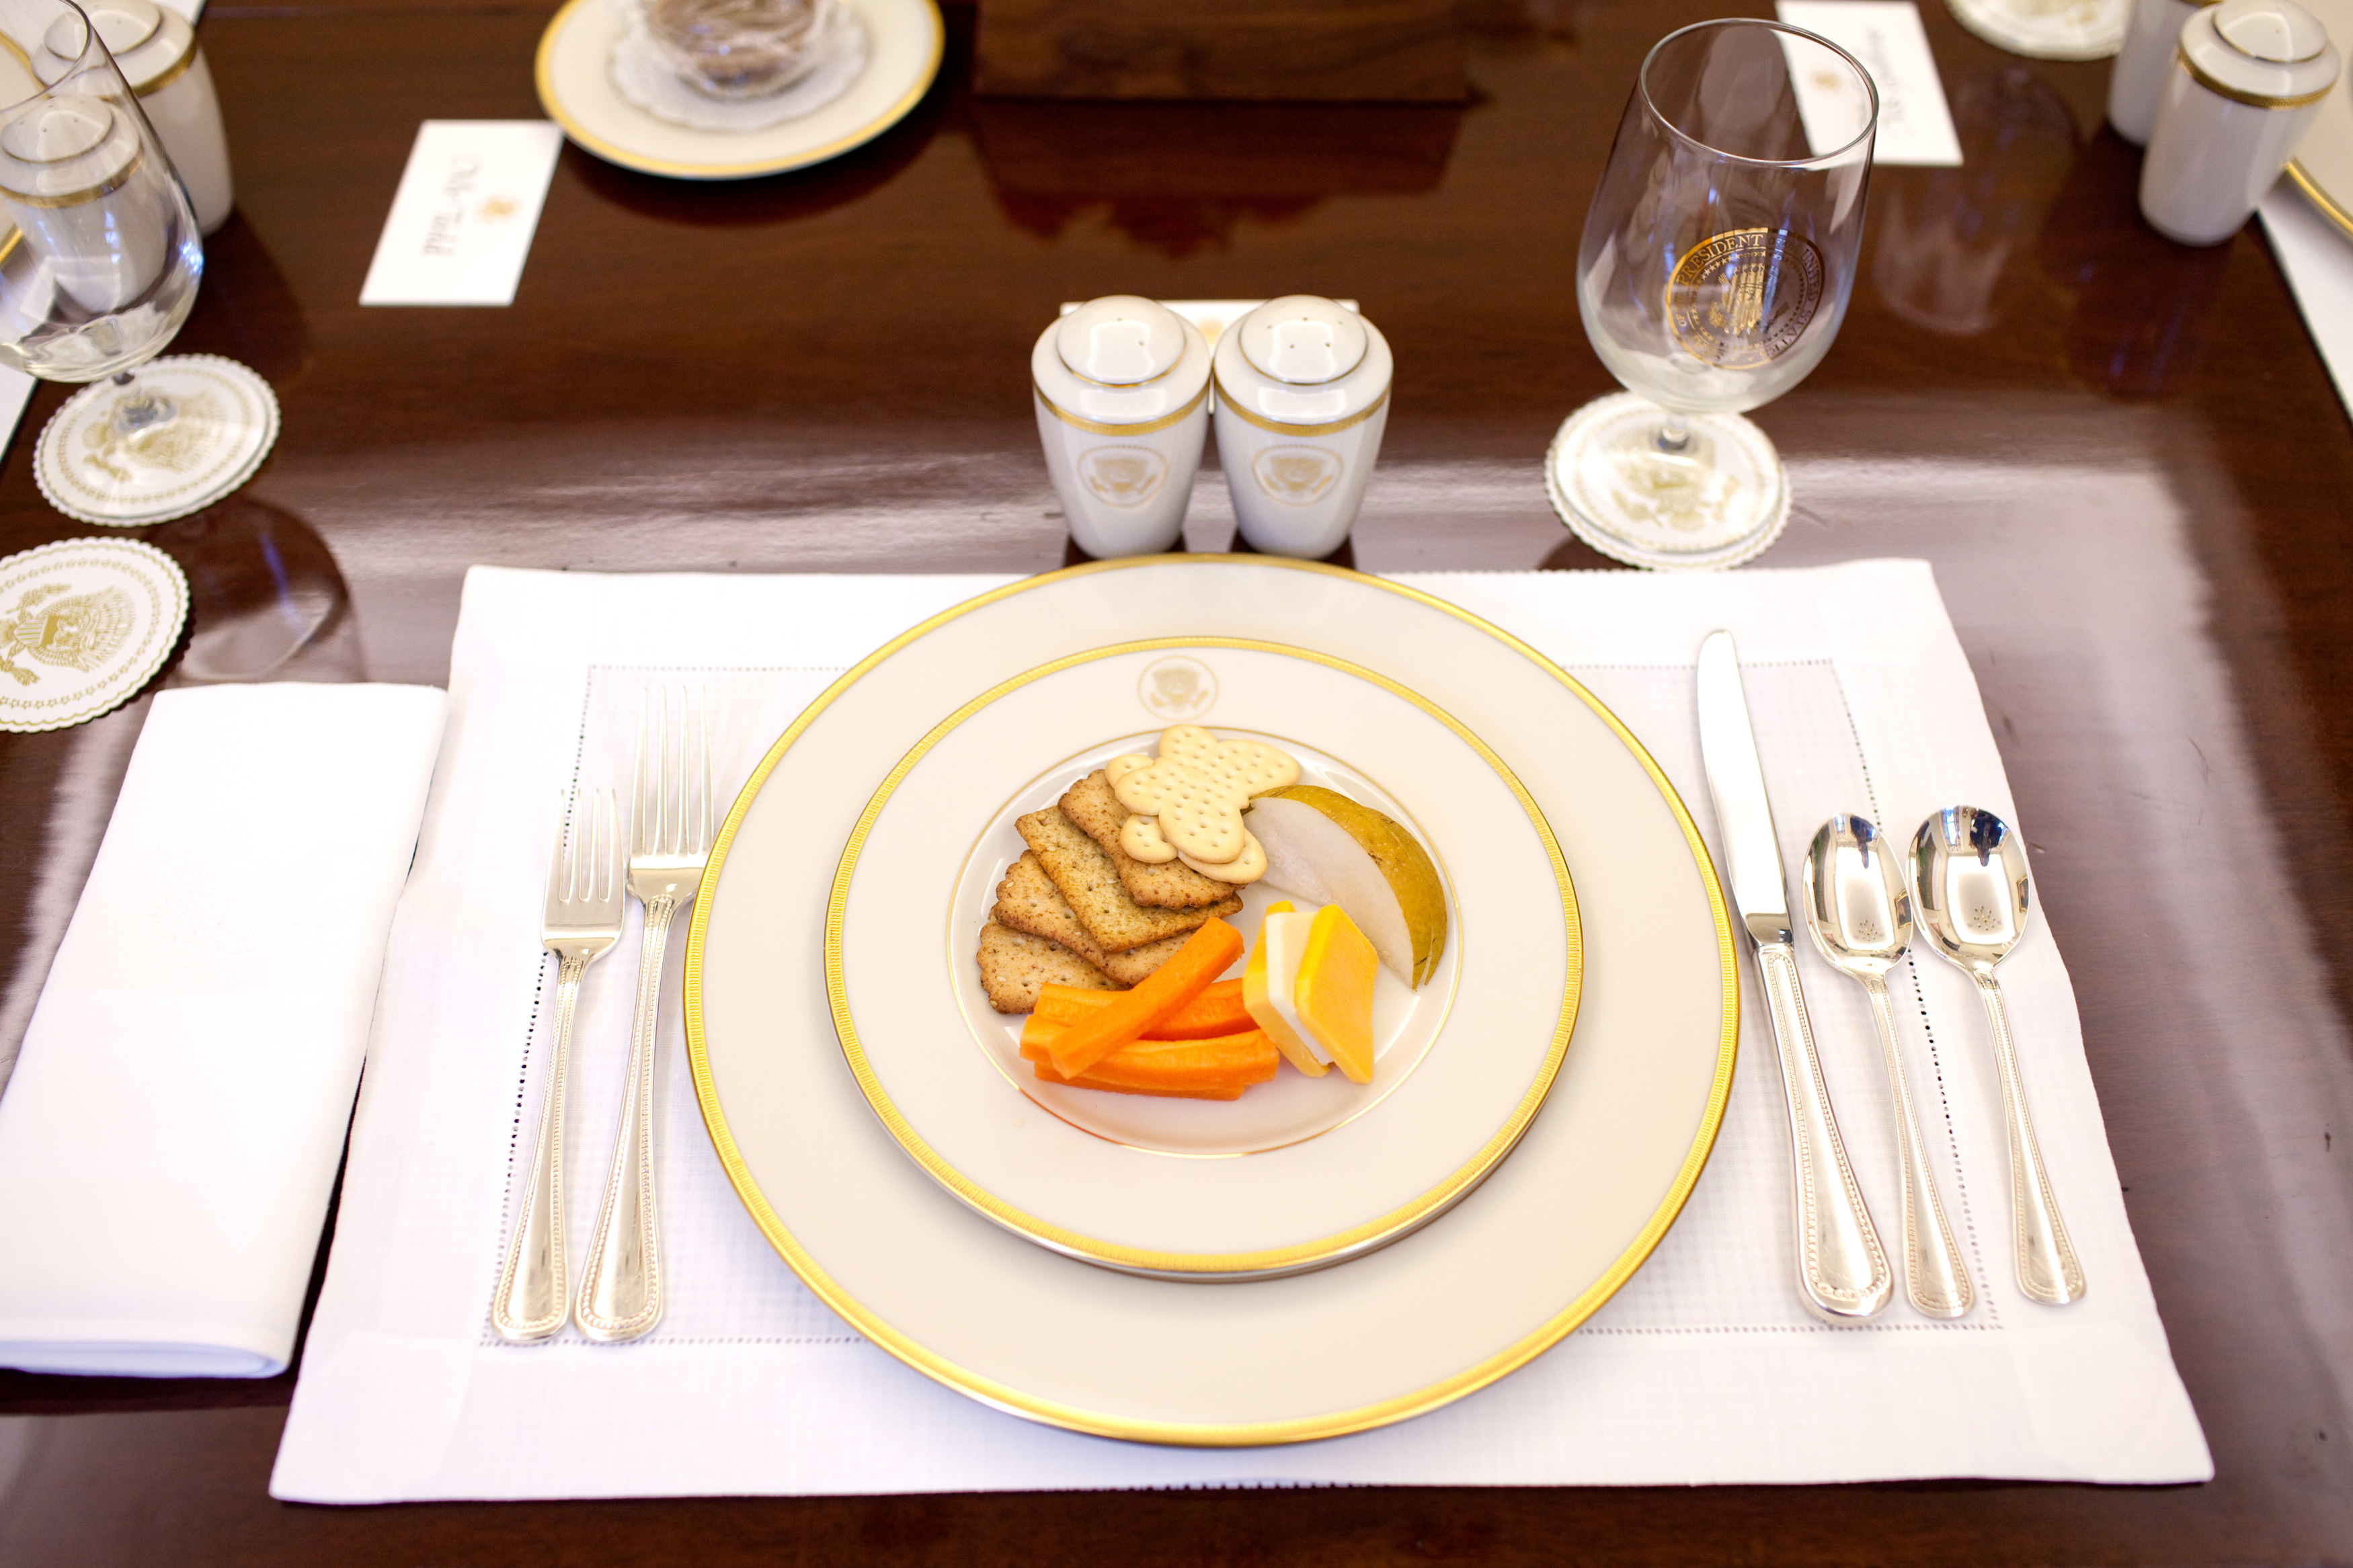 Dining Place Settings ~ Barack obama s food favorites revealed in white house photos